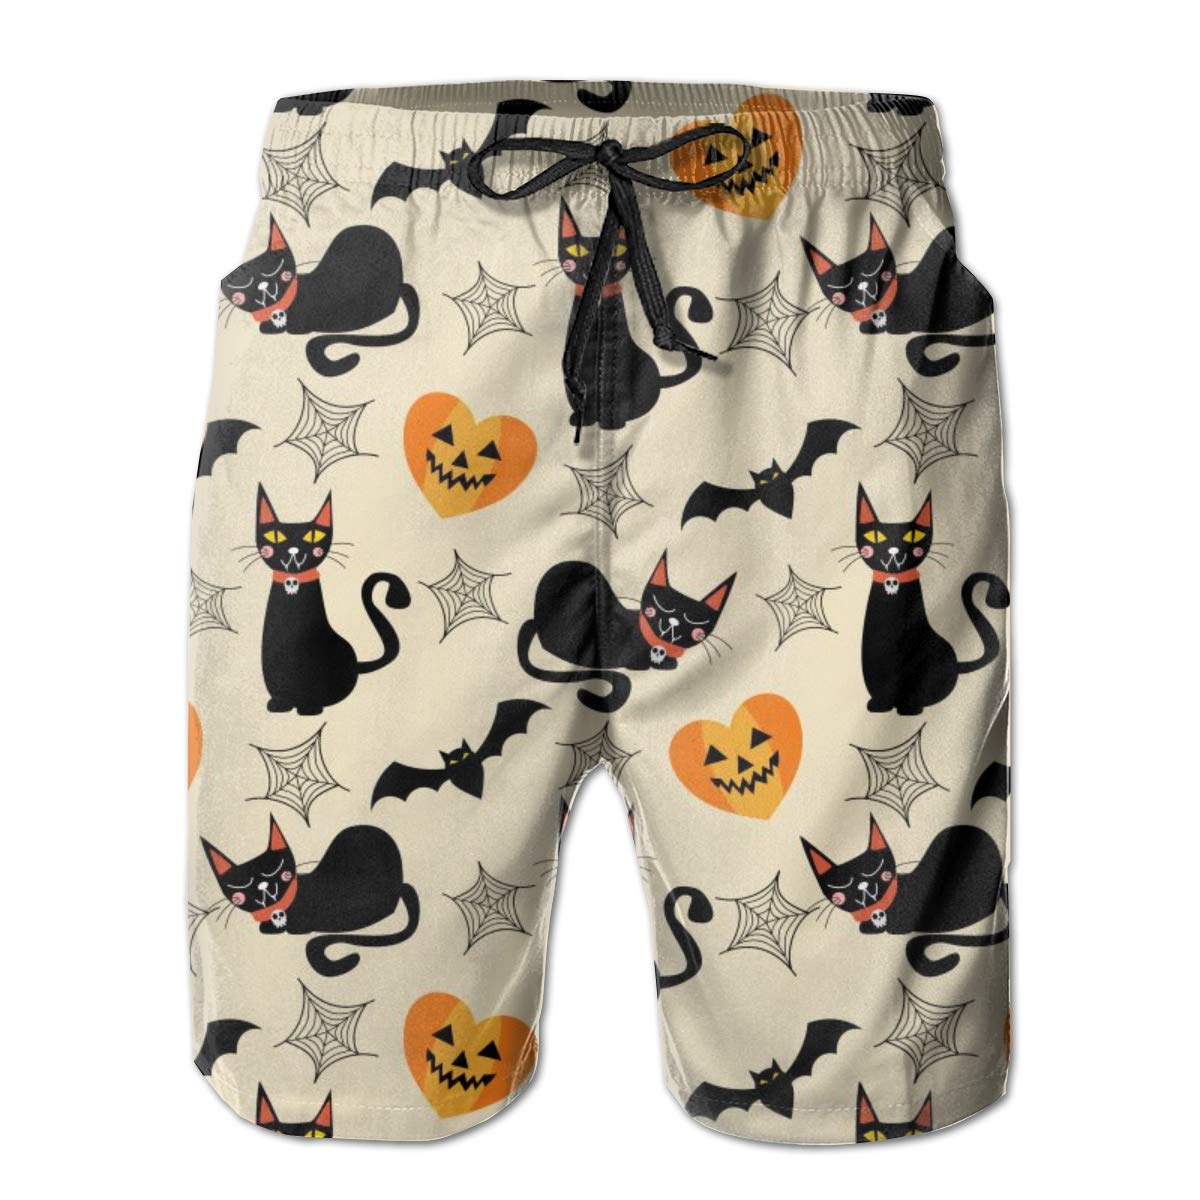 ONE-HEART-HR Mens Black Cat and Halloween Summer Swim Trunk Board Short Beach Shorts